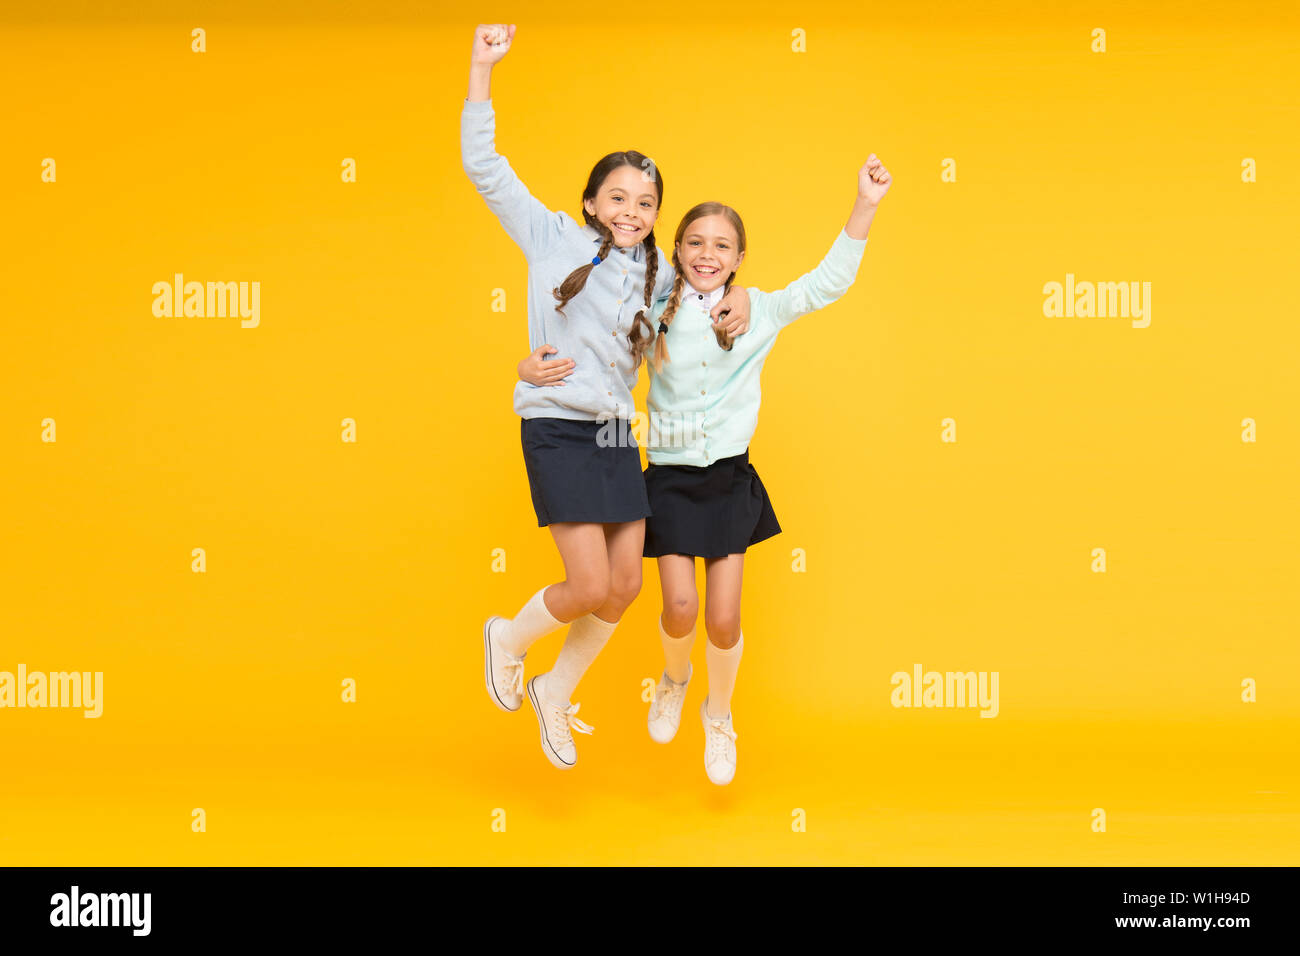 Kids cute students. Schoolgirls best friends excellent pupils. Schoolgirls tidy appearance school uniform. School friendship. September again. Childhood happiness. School day fun cheerful moments. Stock Photo